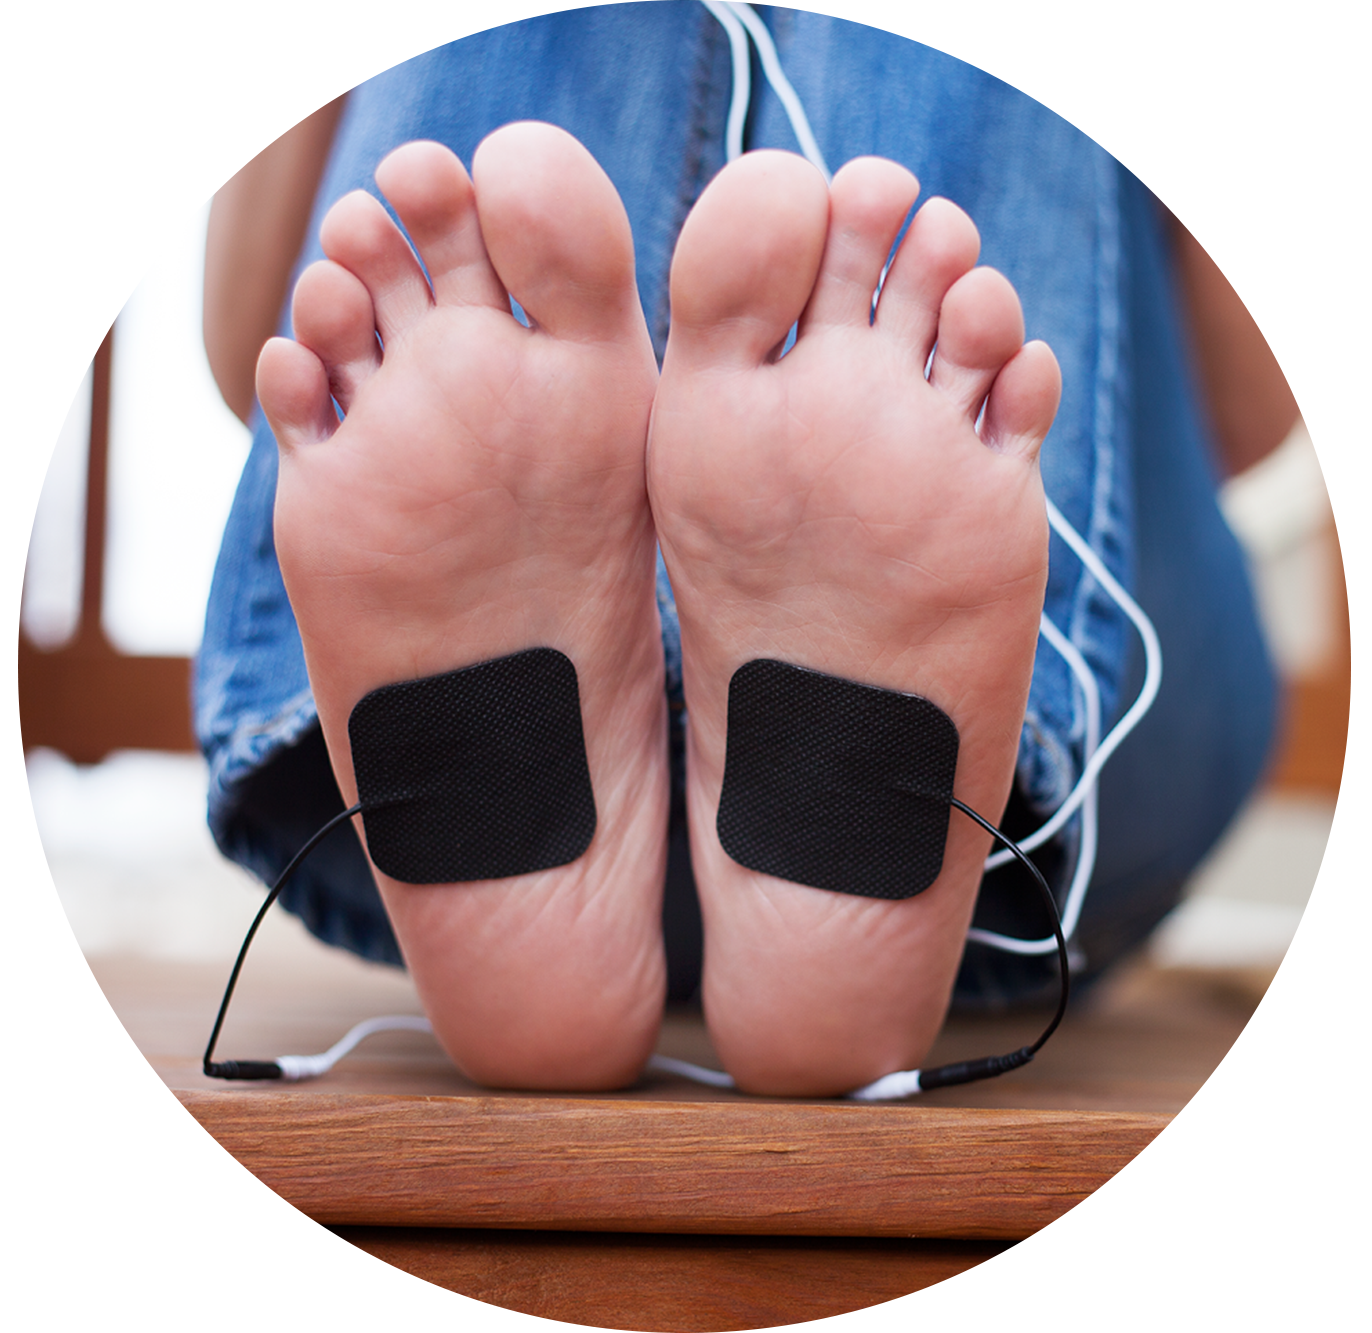 TENS Therapy Electrode placement for foot pain